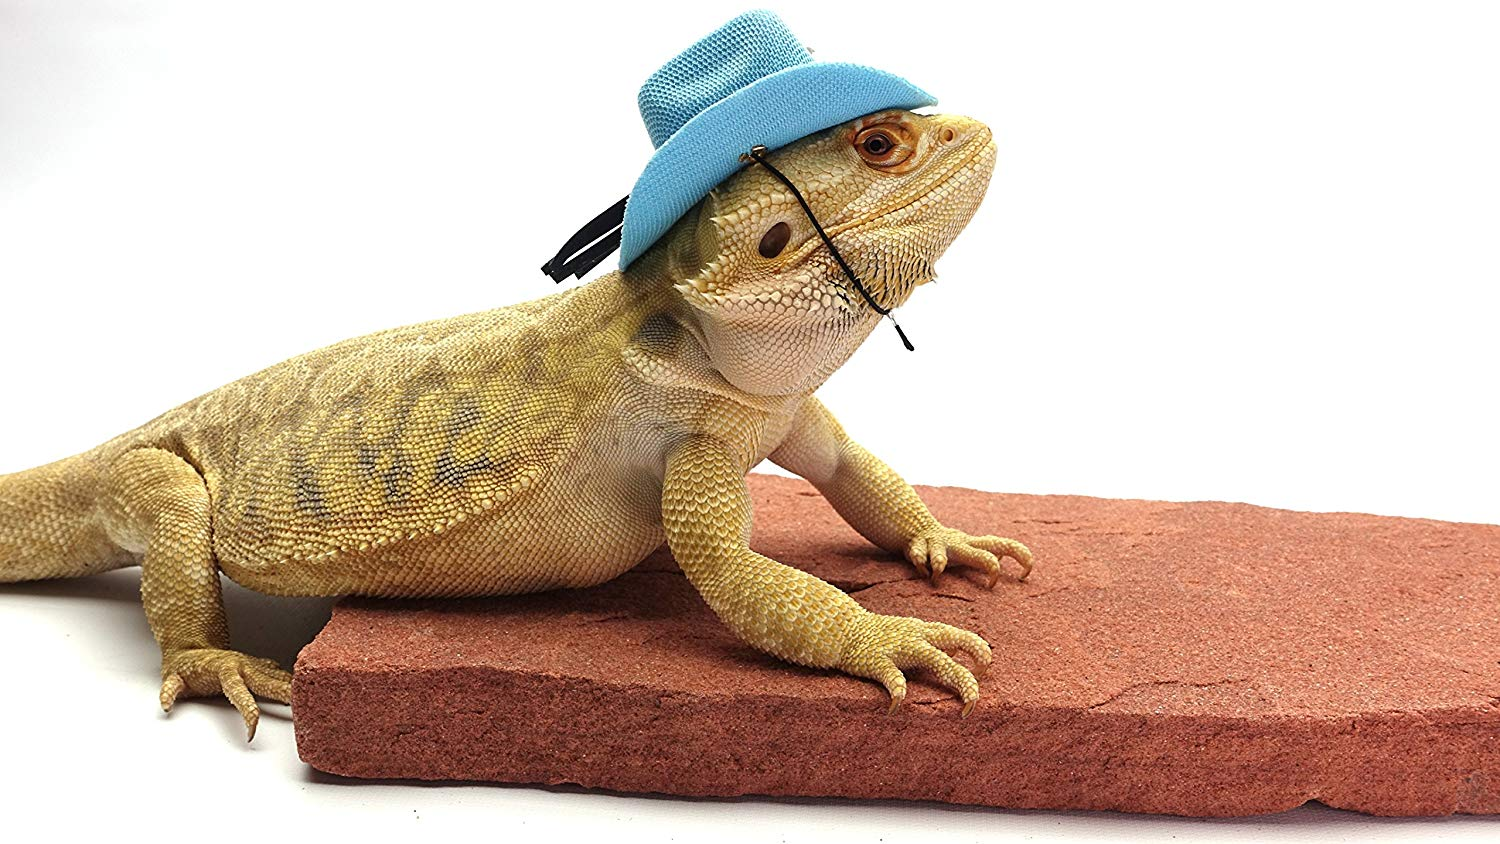 Florida school finds bearded dragon in student's backpack